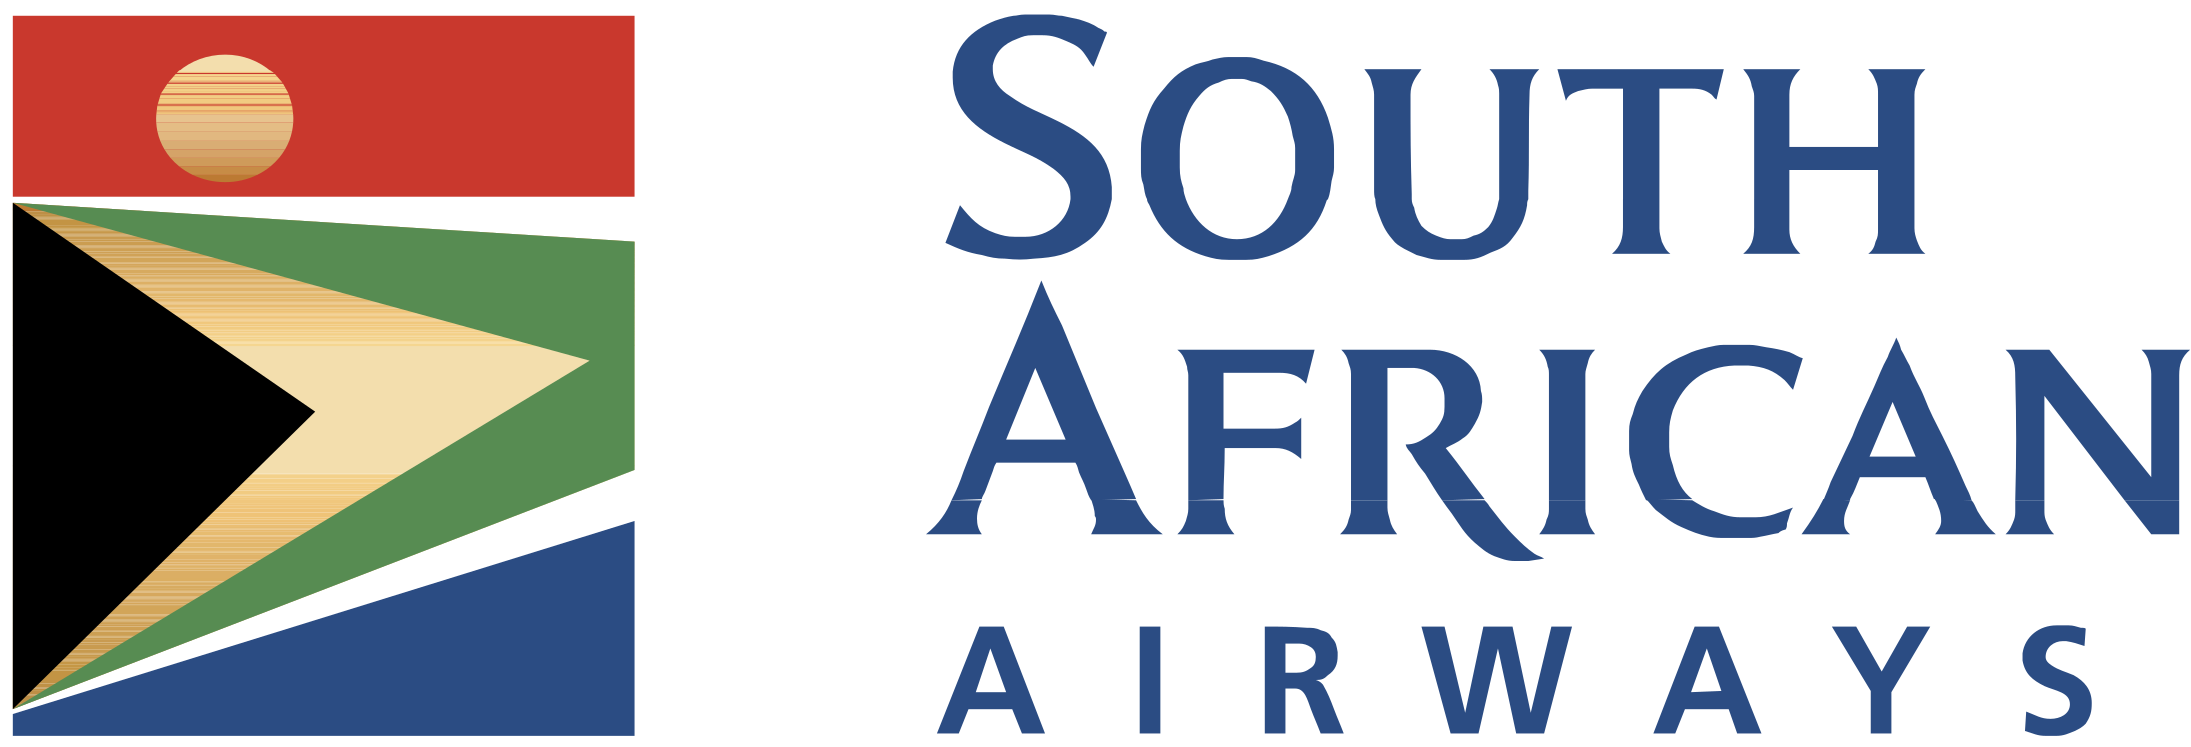 South african airways clipart picture library stock HD South African Airways Logo Png Transparent - South ... picture library stock